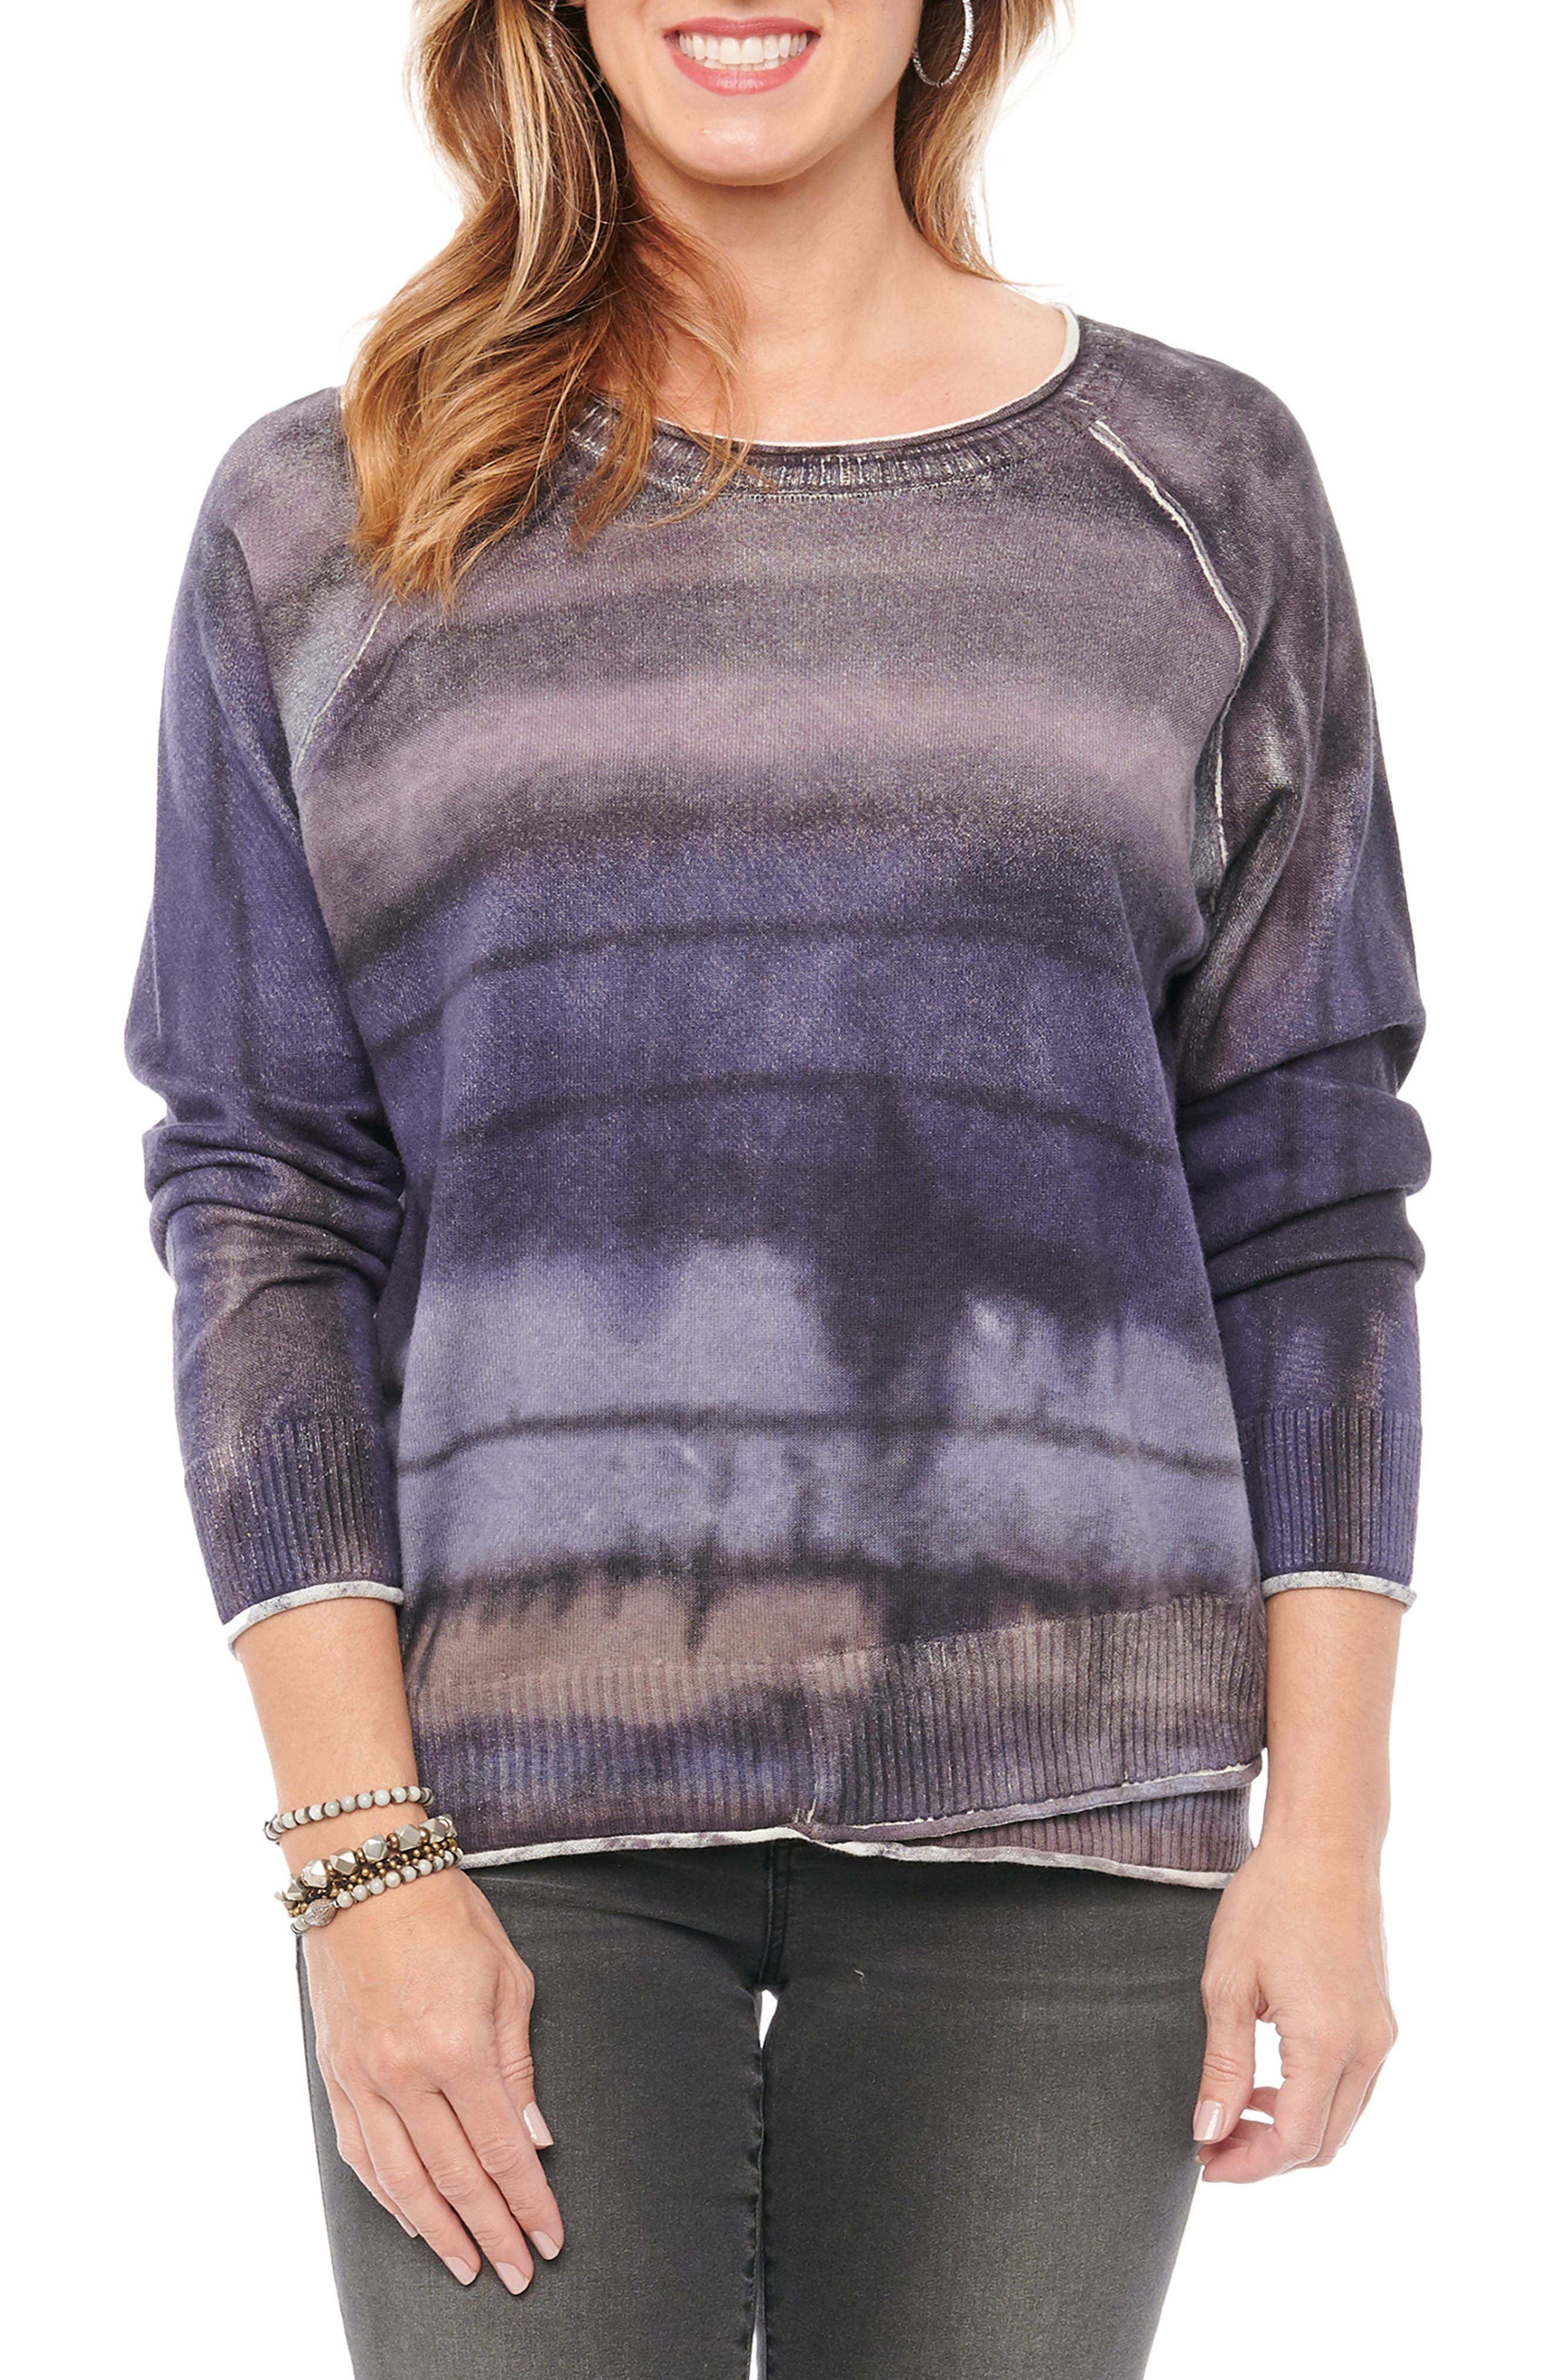 Hazy tie-dye stripes enliven this soft cotton pullover styled with sporty raglan sleeves and raw, rolled seams. Style Name: Wit & Wisdom Tie Dye Sweater (Plus Size). Style Number: 6133435. Available in stores.